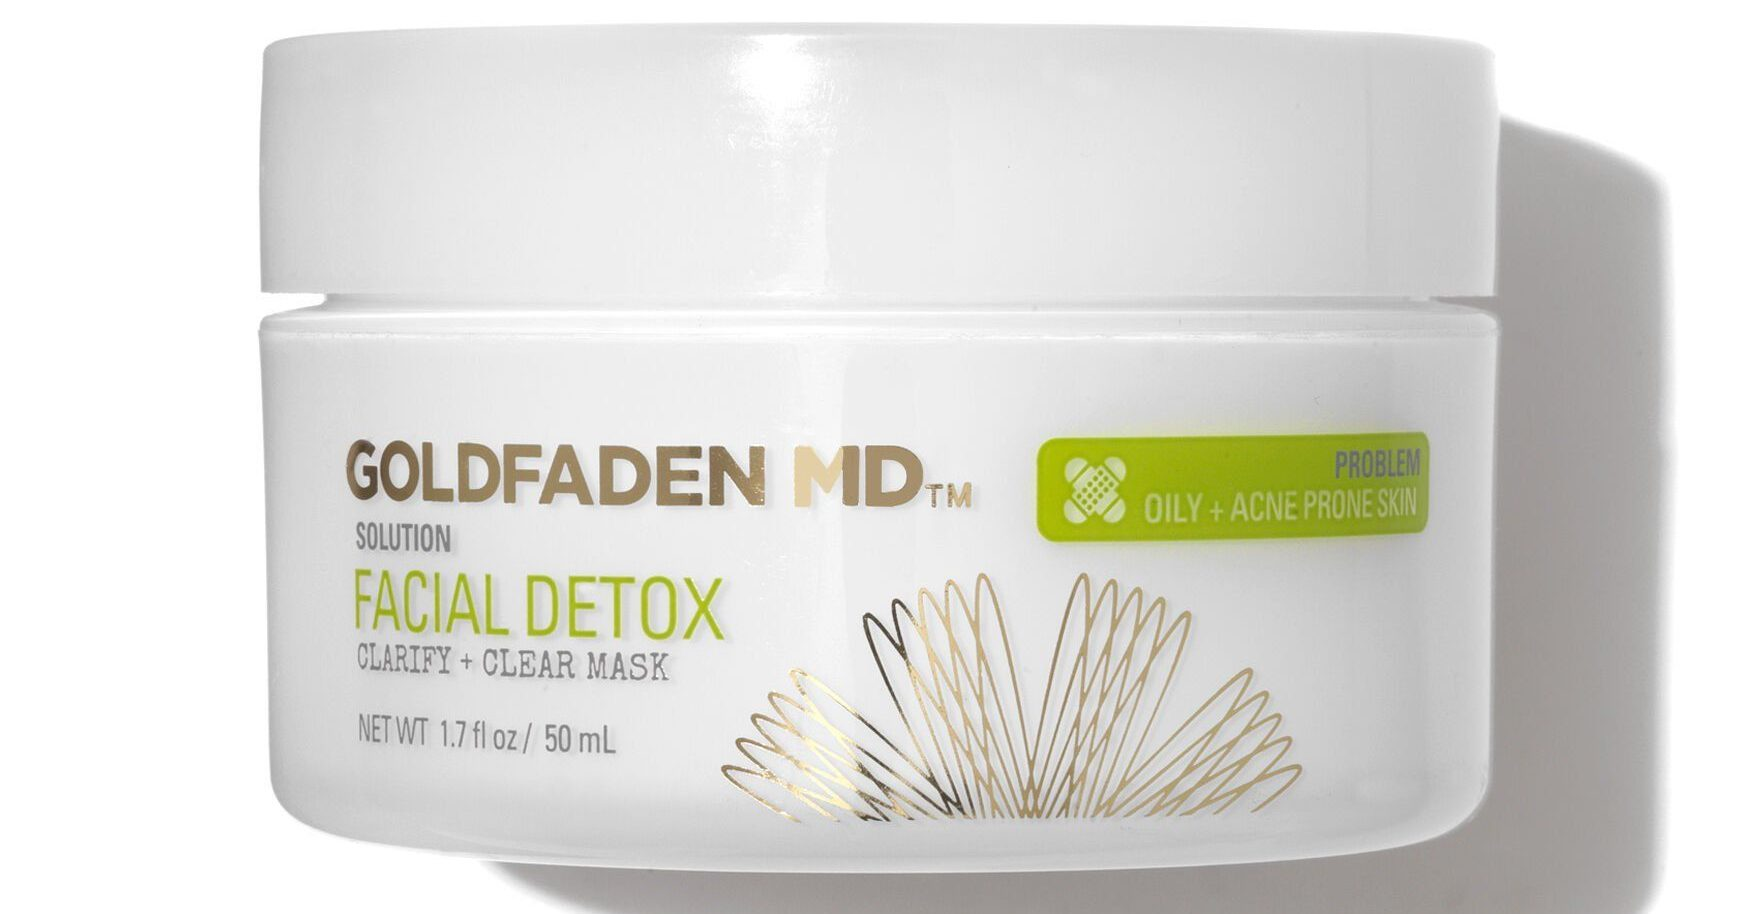 My Celebrity Life – Goldfaden Md Facial Detox Clarify + Clear Mask